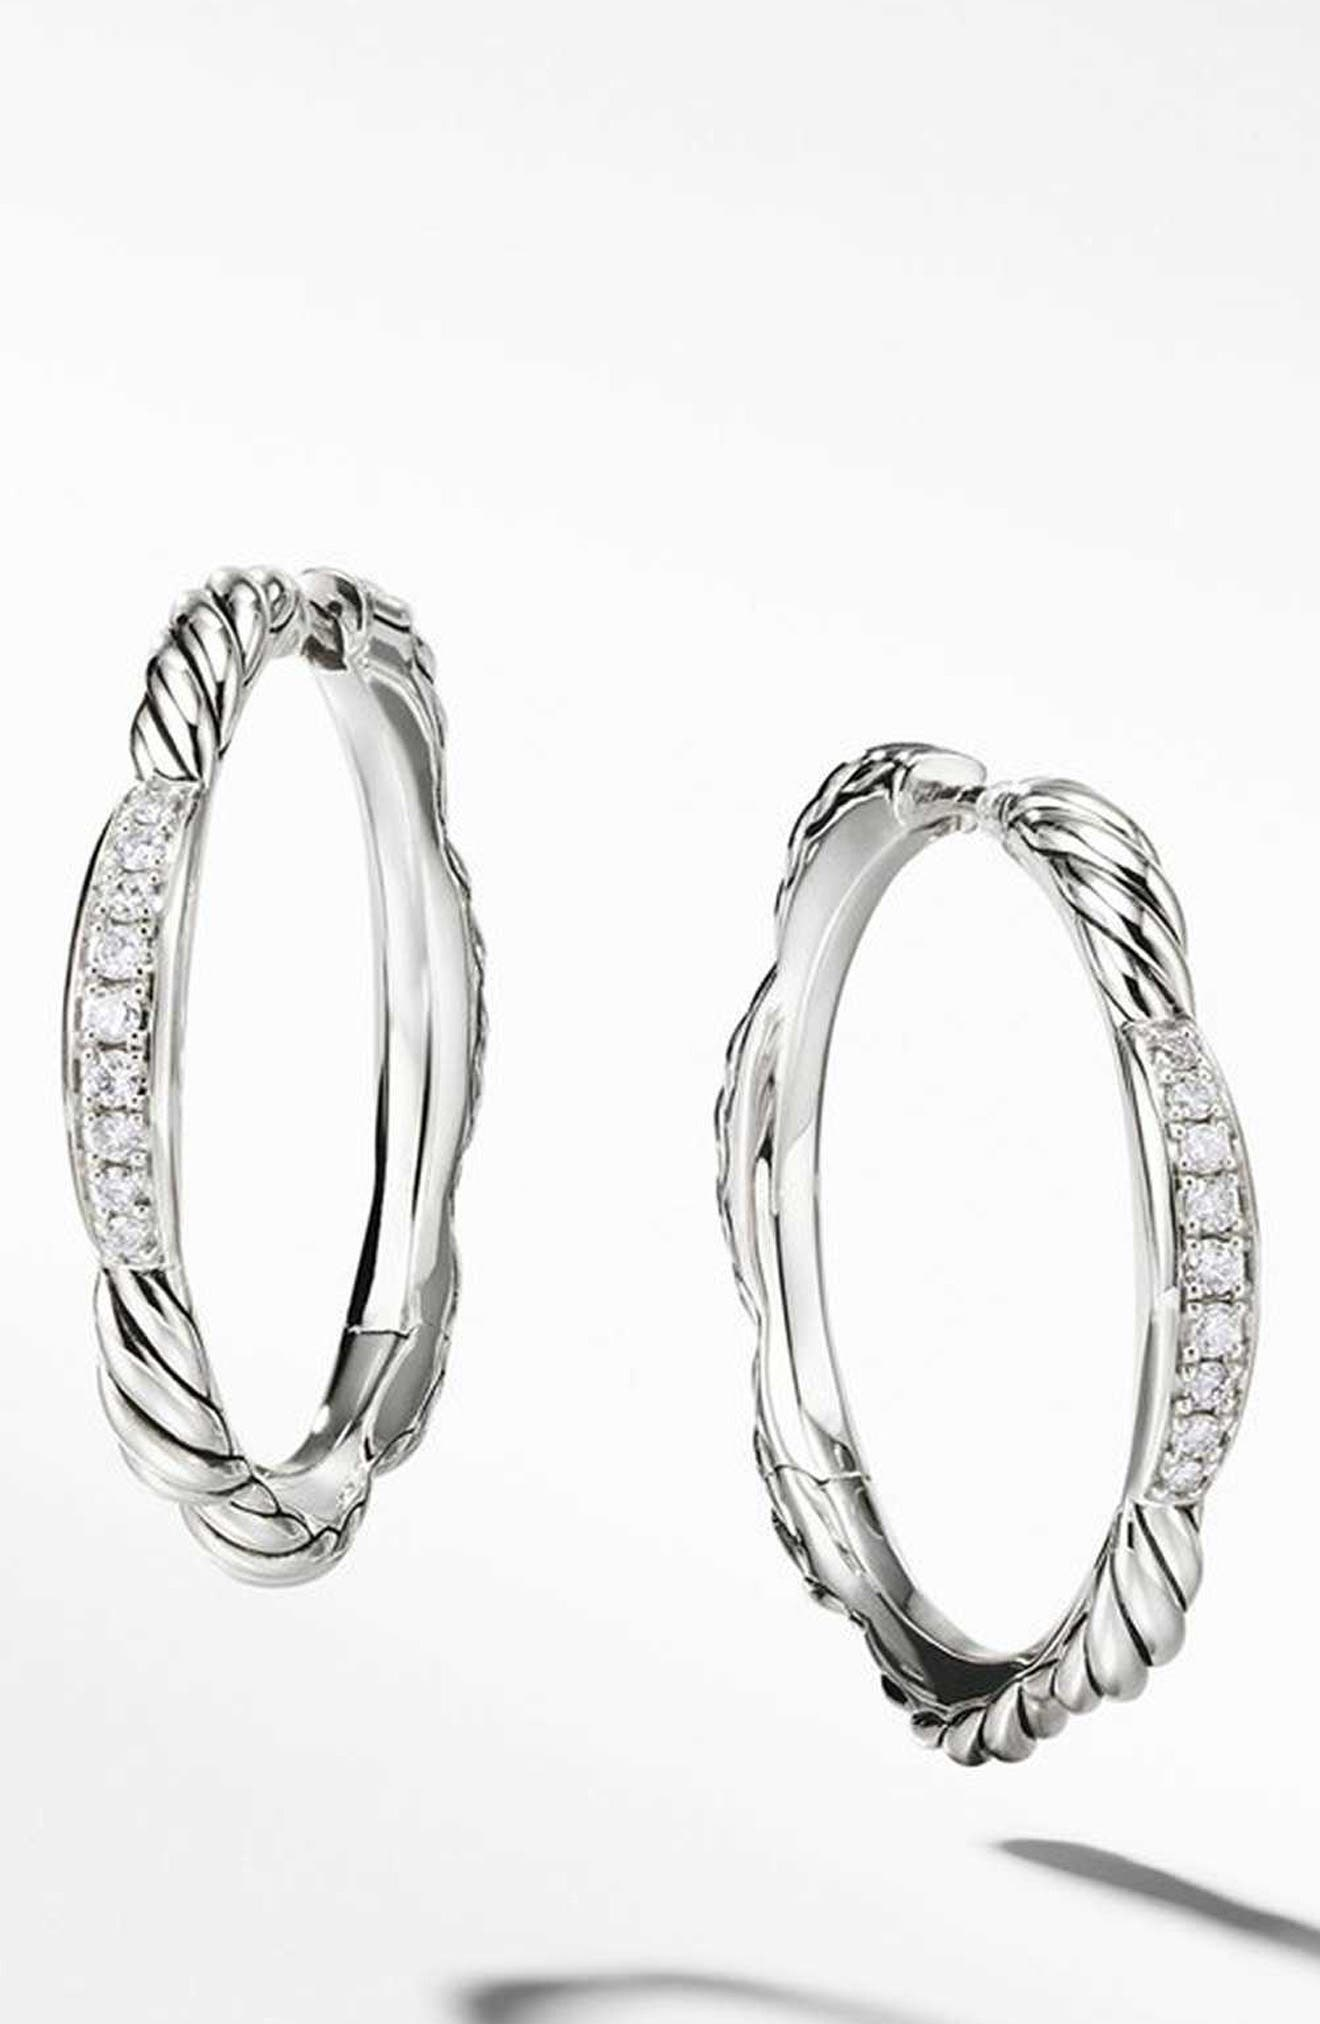 Tides Collection Hoop Earrings with Diamonds,                         Main,                         color, STERLING SILVER/ DIAMOND